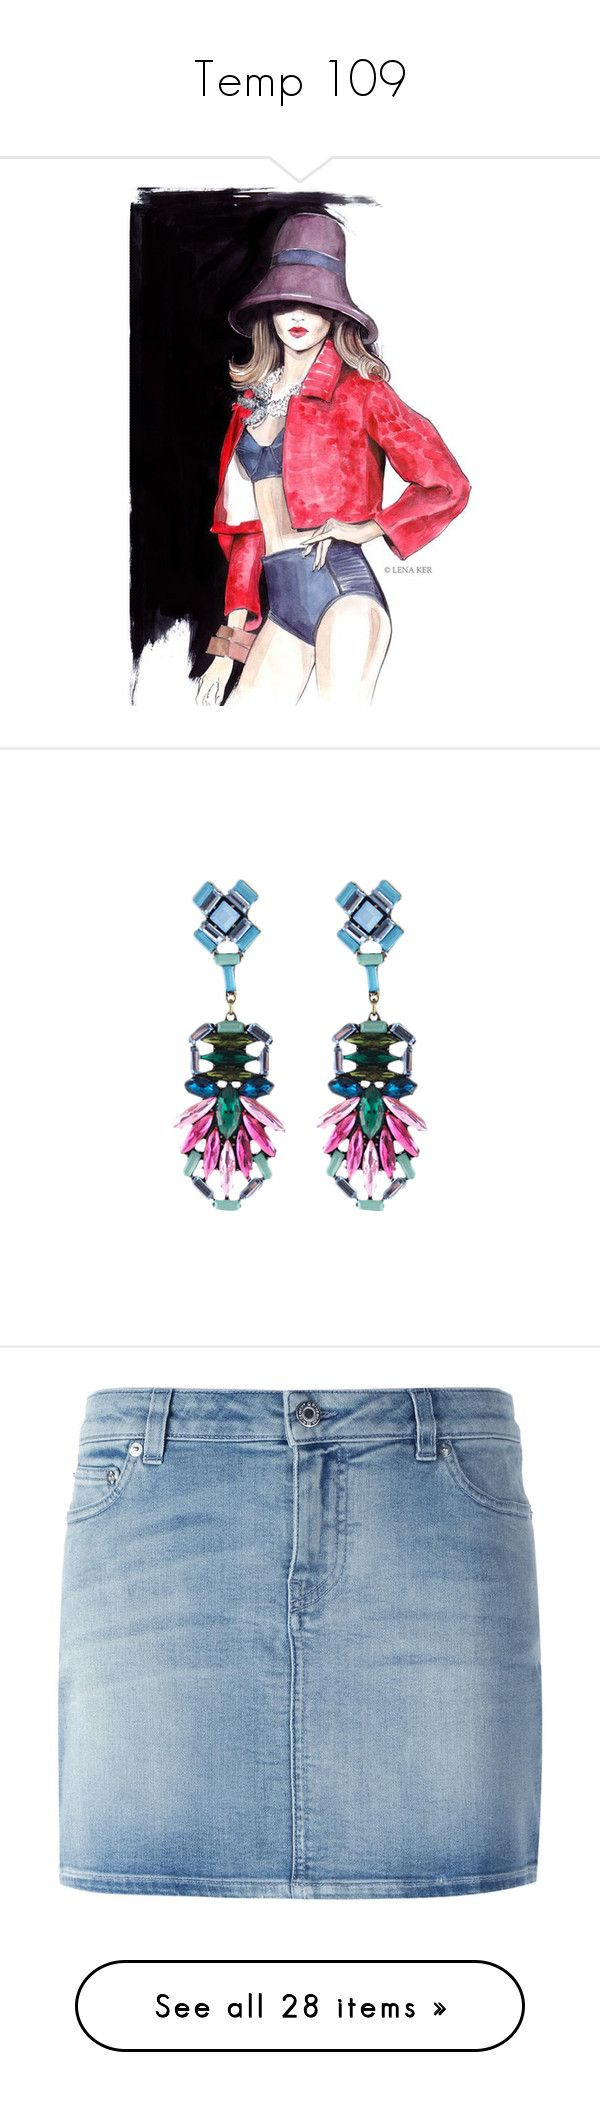 """Temp 109"" by katiemarilexa ❤ liked on Polyvore featuring home, home decor, wall art, jewelry, earrings, multi colored rhinestone earrings, geometric drop earrings, multi colored earrings, rhinestone drop earrings and colorful earrings"